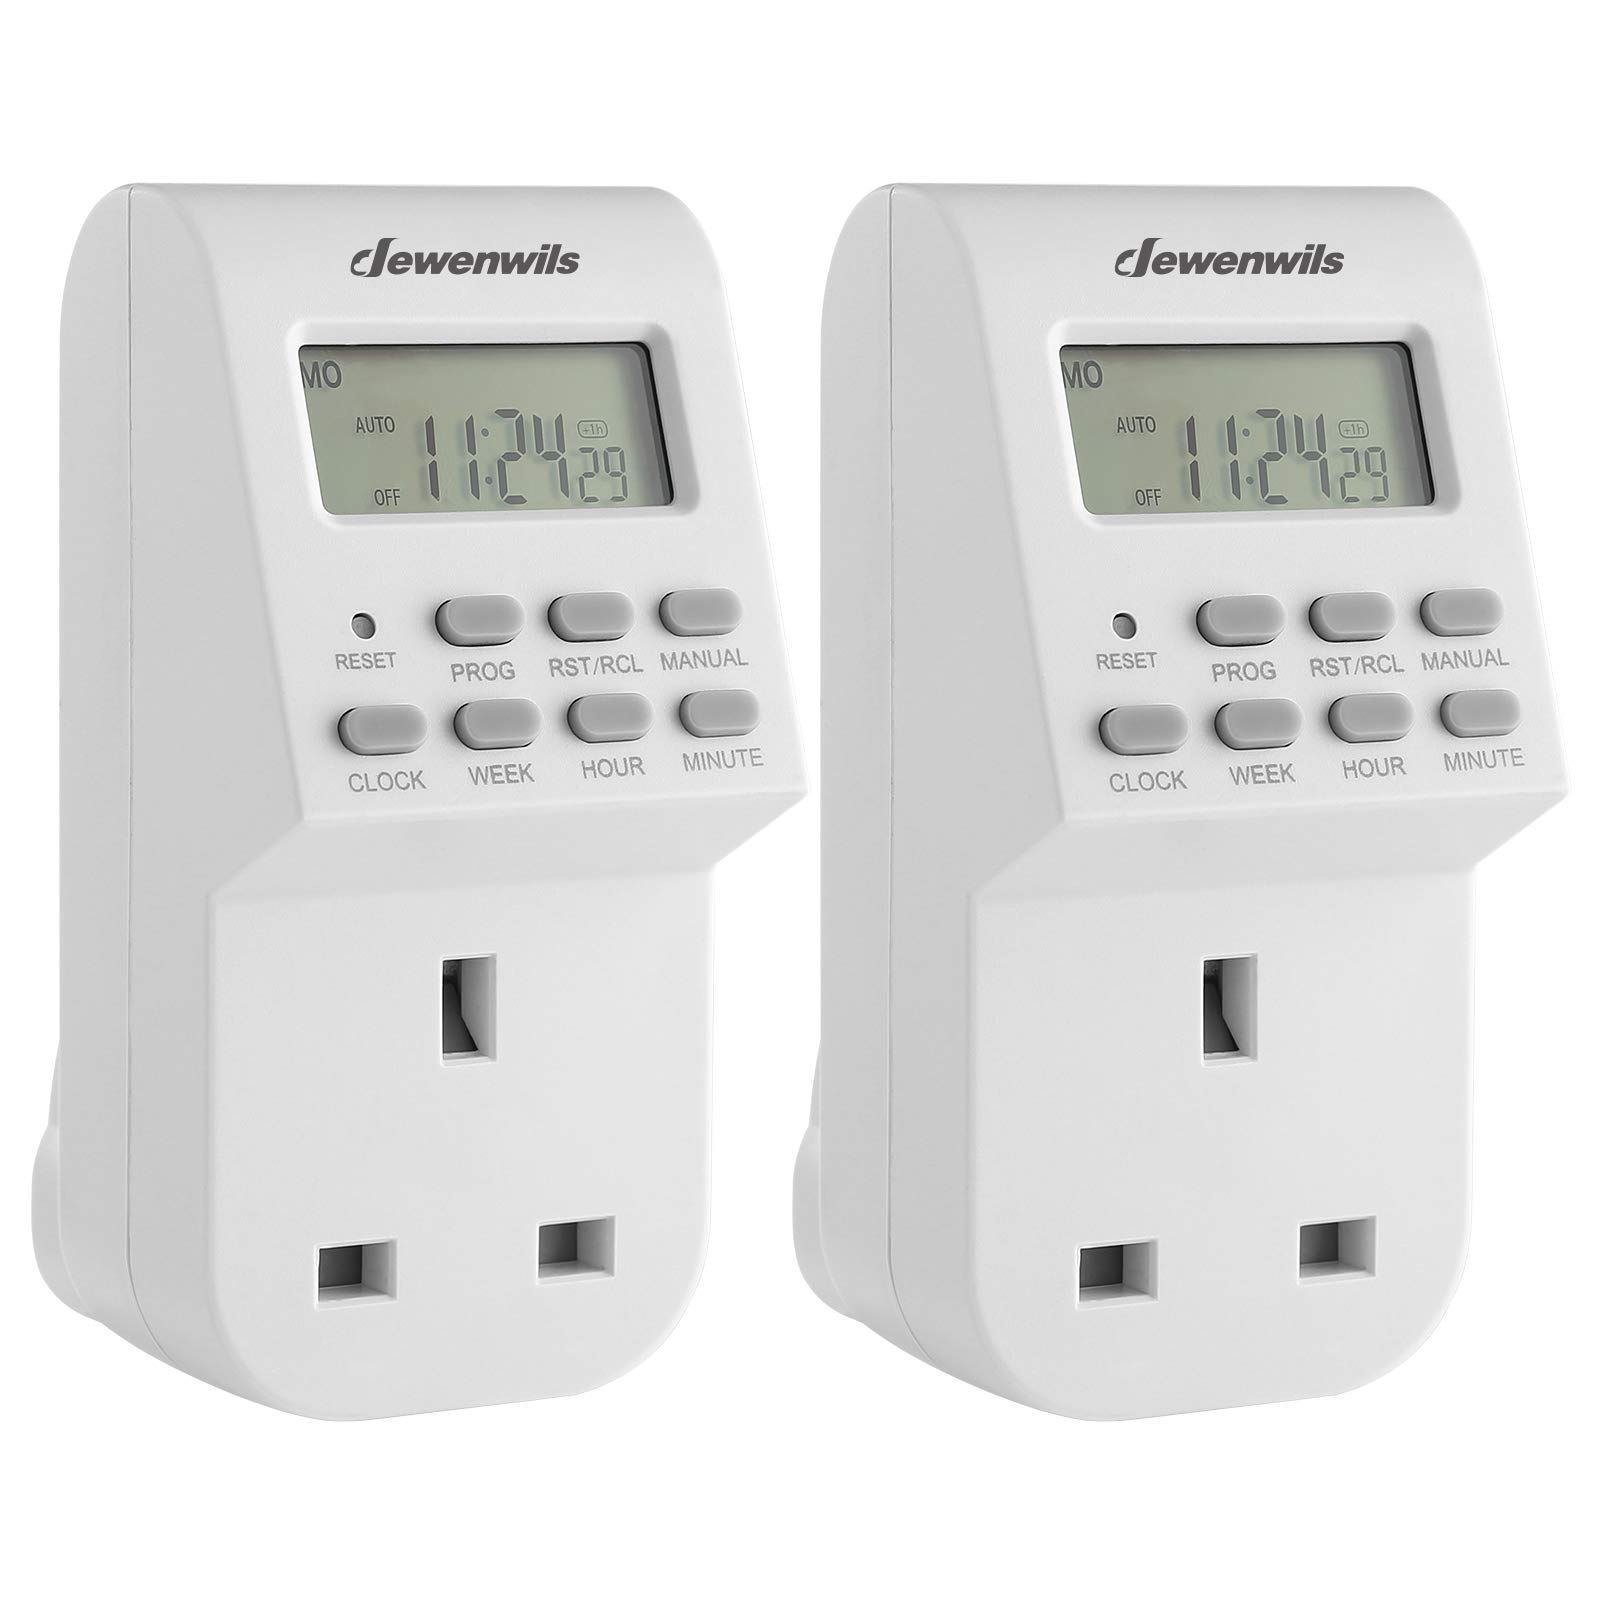 DEWENWILS Digital Lamp Timer Socket Plug, 20 ON/Off Weekly Settings Electrical Plug in Light Timer Switch for Christmas Light,Coffee Machine,Home Appliances,CE Listed